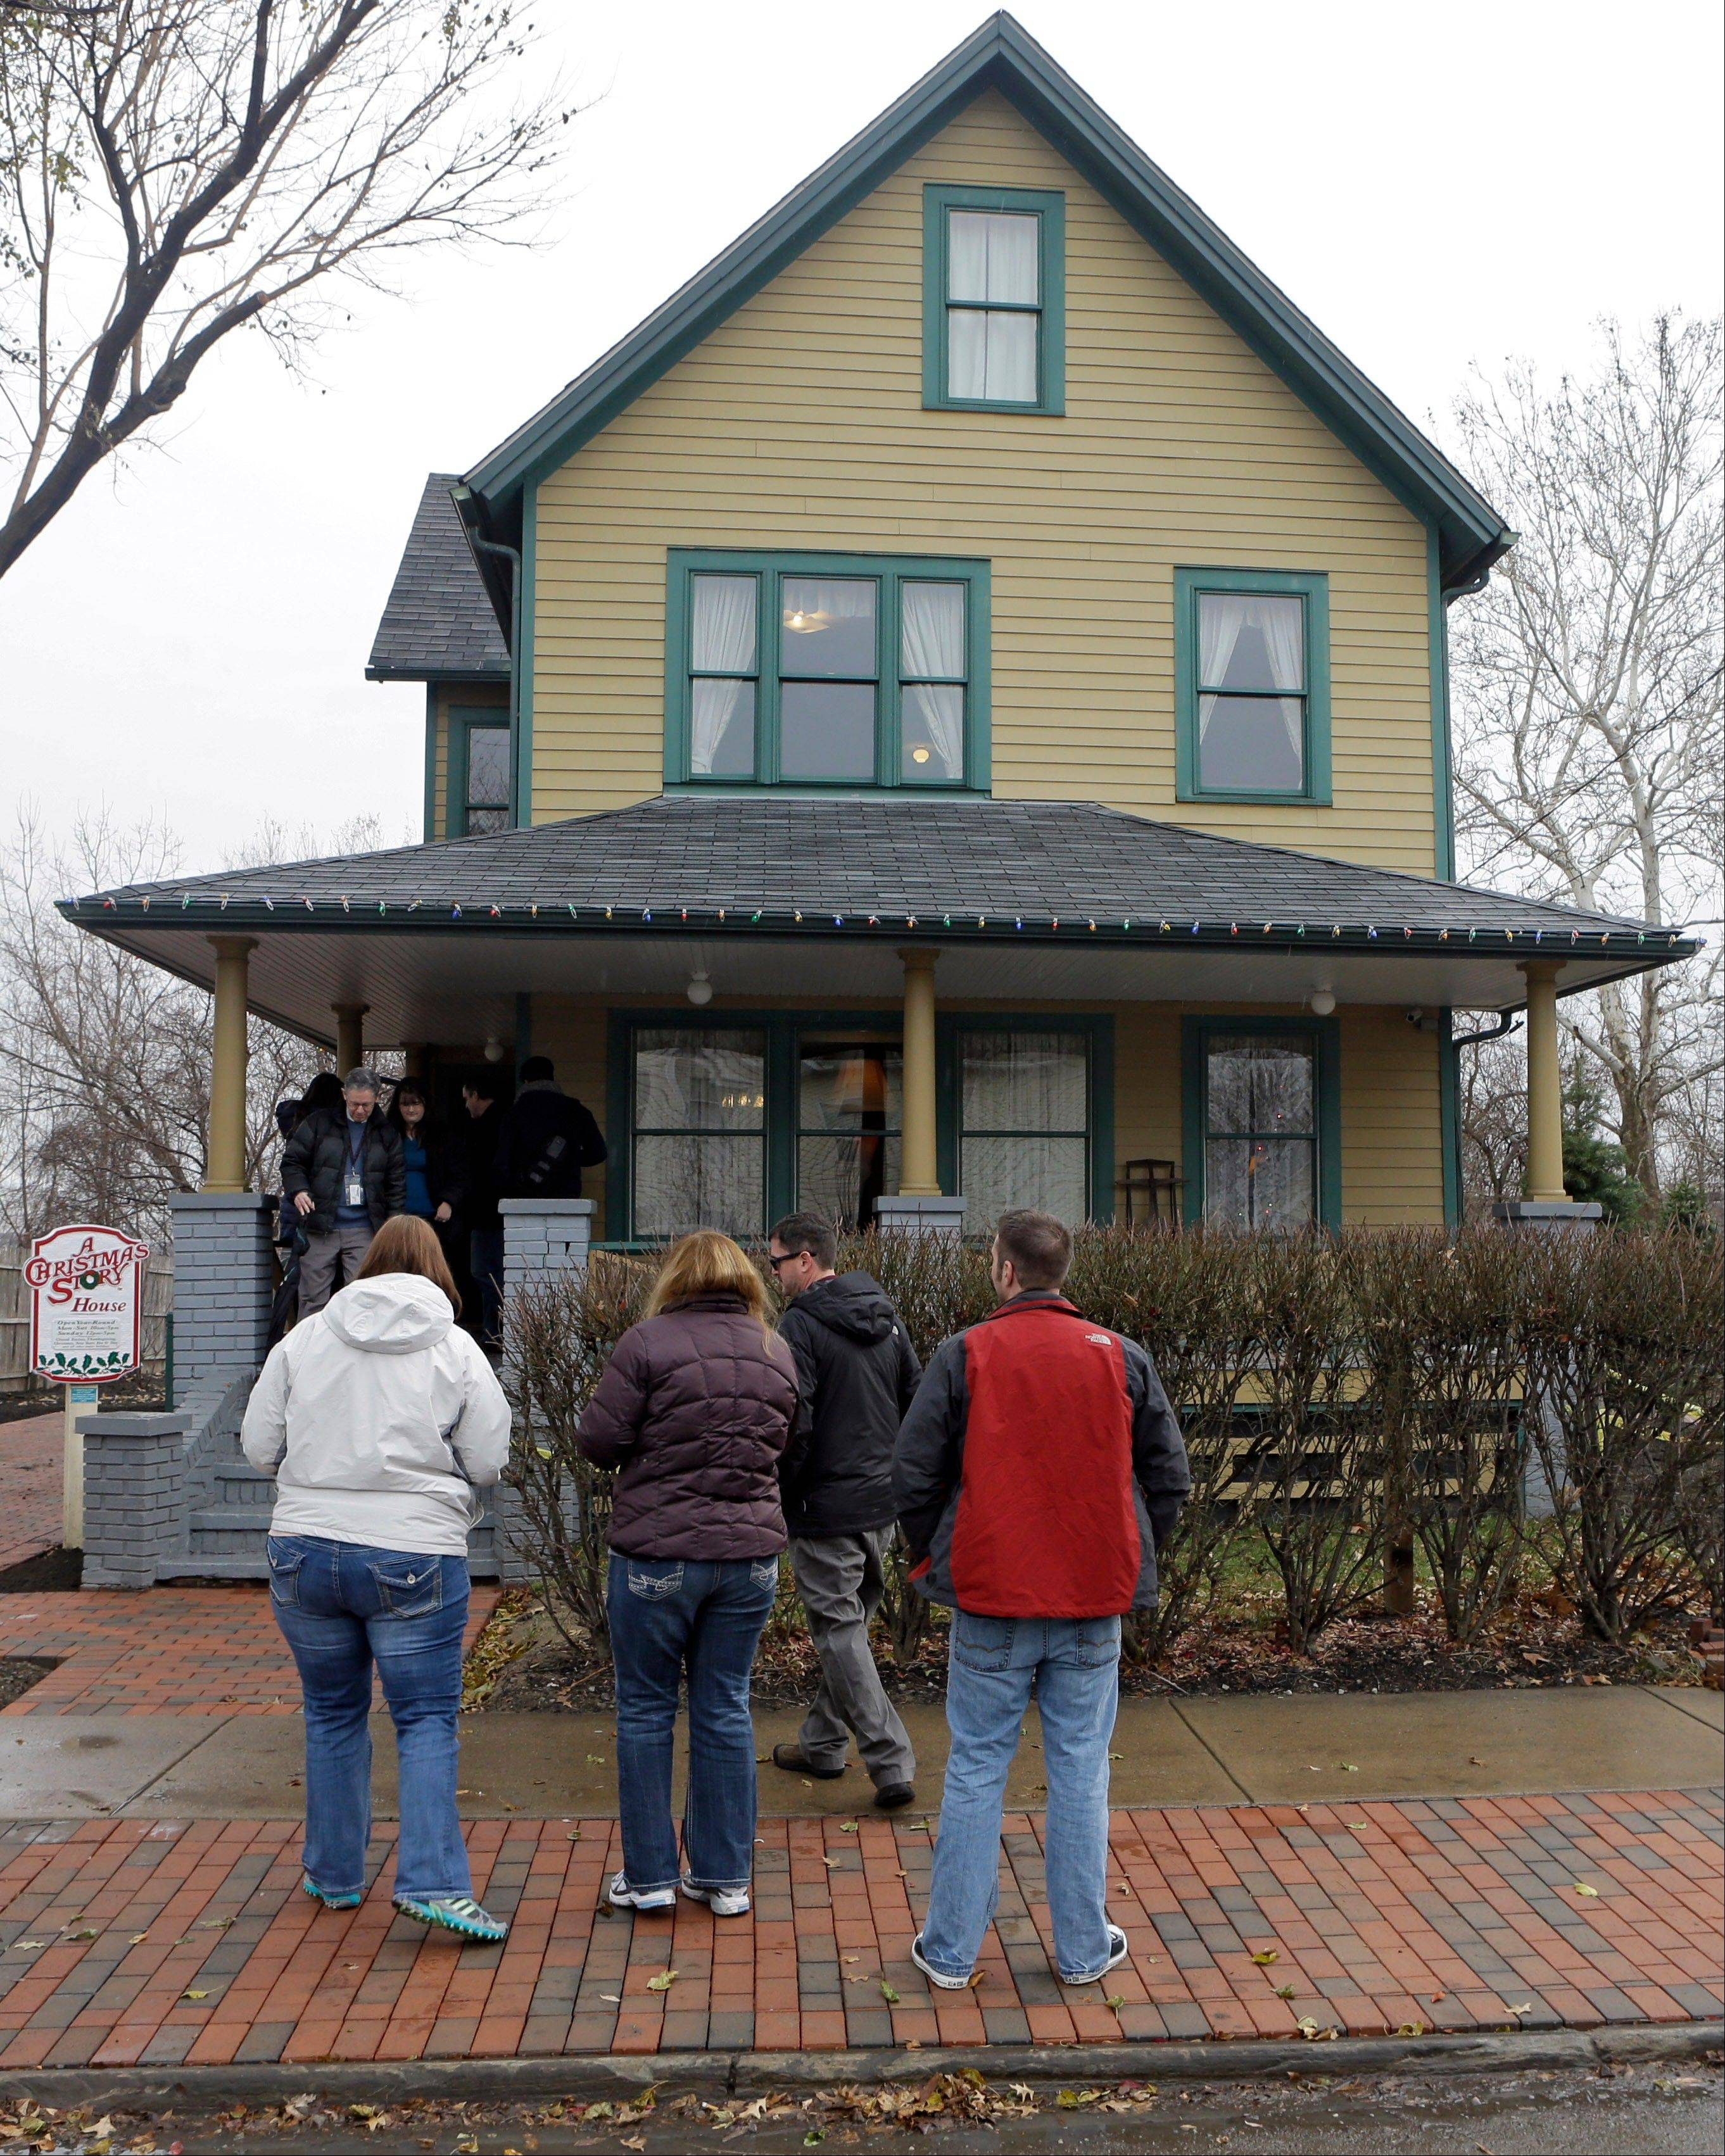 "visitors wait to tour the house in Cleveland where much of the 1983 movie ""A Christmas Story"" was filmed. The house and adjacent museum expect an influx of visitors on the 30th anniversary of the quirky holiday film turned classic in the city where Ralphie's house was restored on a bluff overlooking the steel mills."